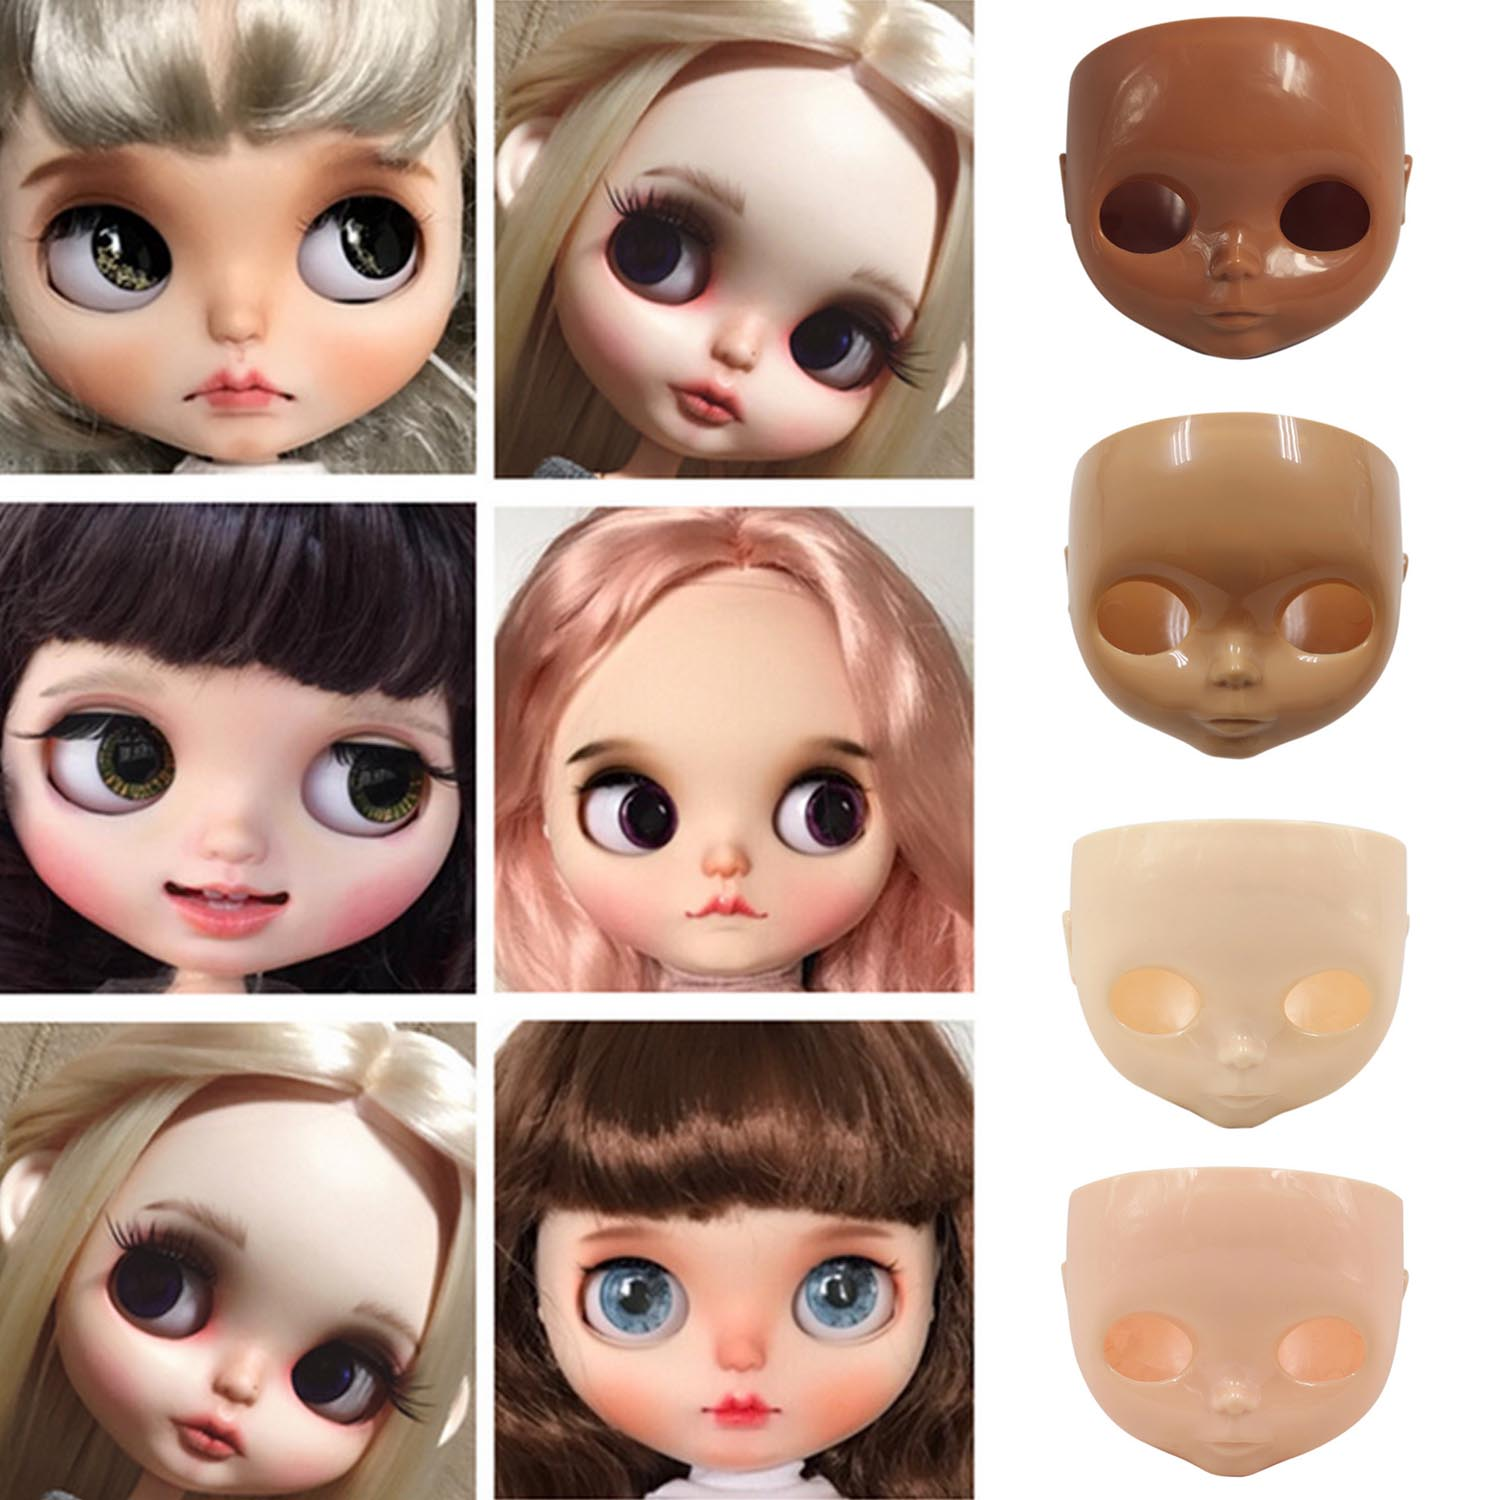 Besegad 1:6 Fashion Dolls Face Plate Doll Faceplate + Backplate Head + Screws For Blyth Dolls DIY Changing Face Accessories Toys